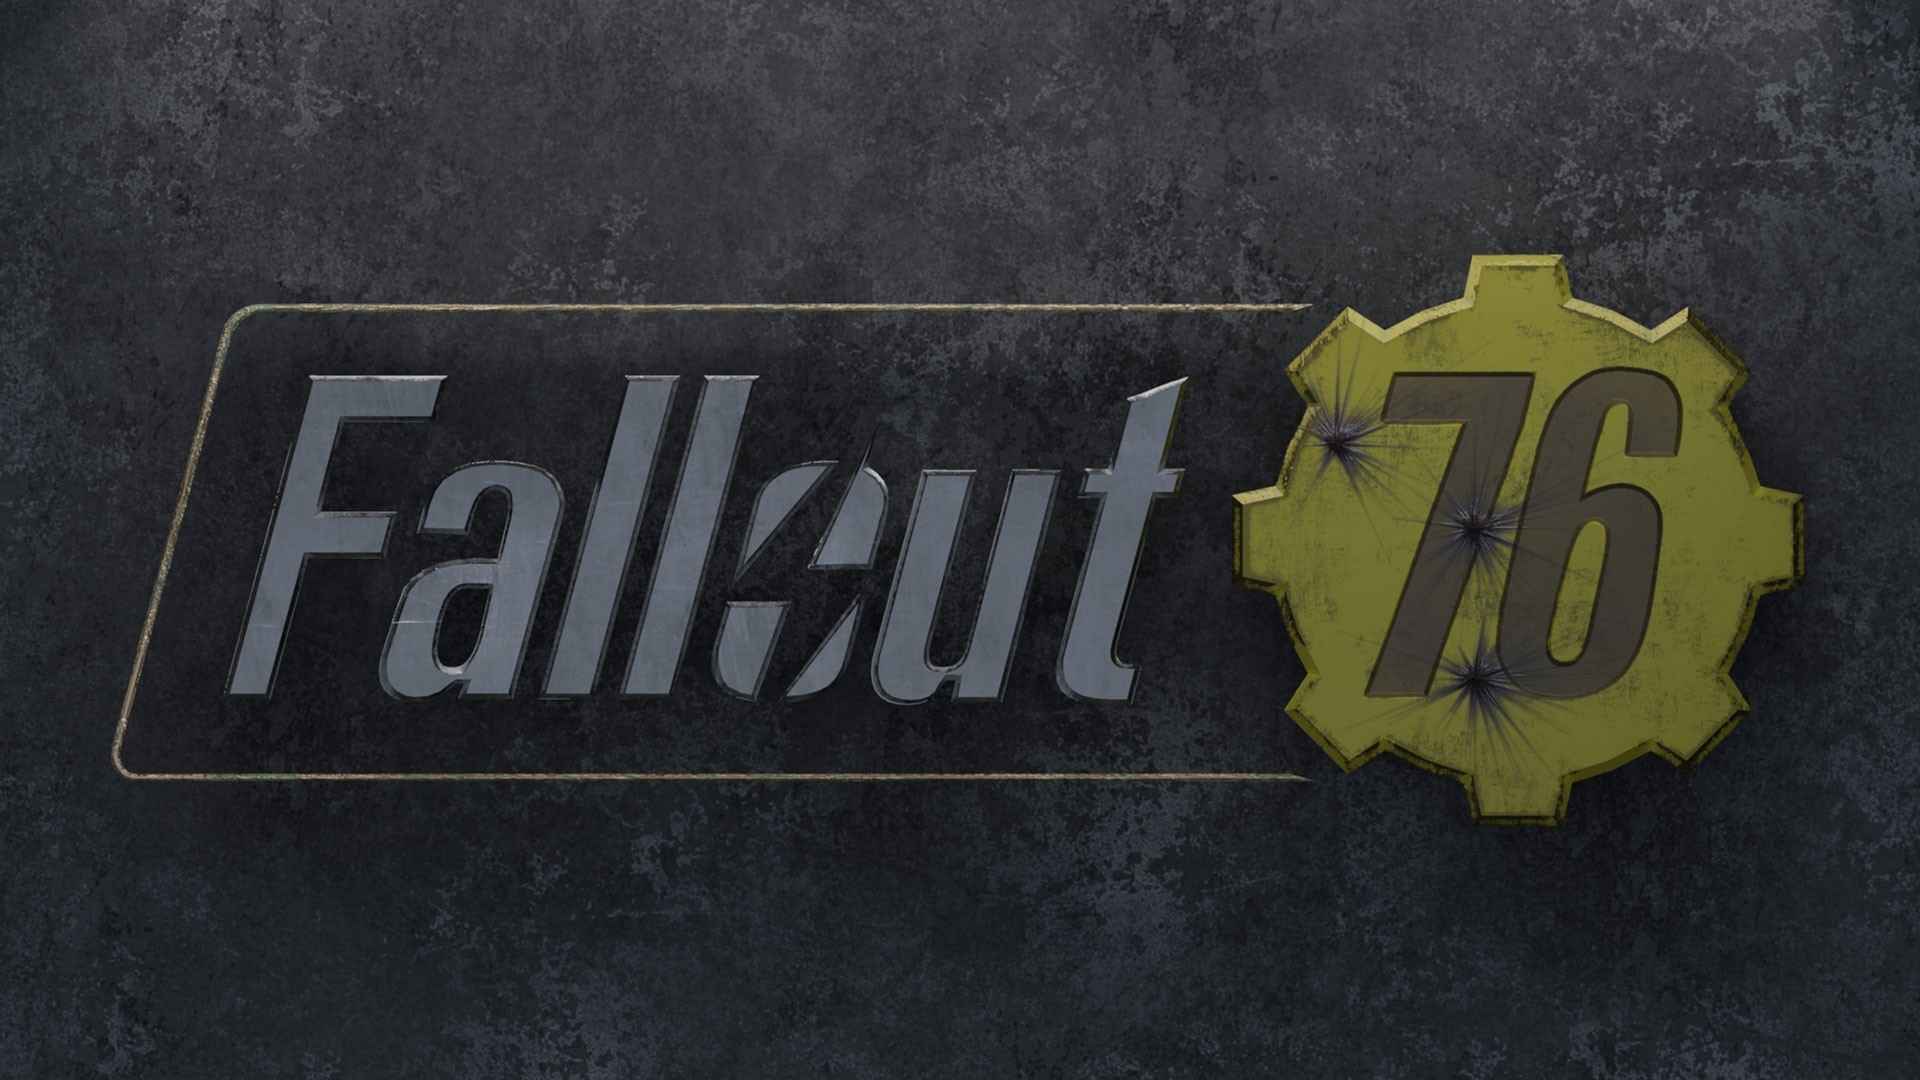 Fallout 76 Wallpaper and Background